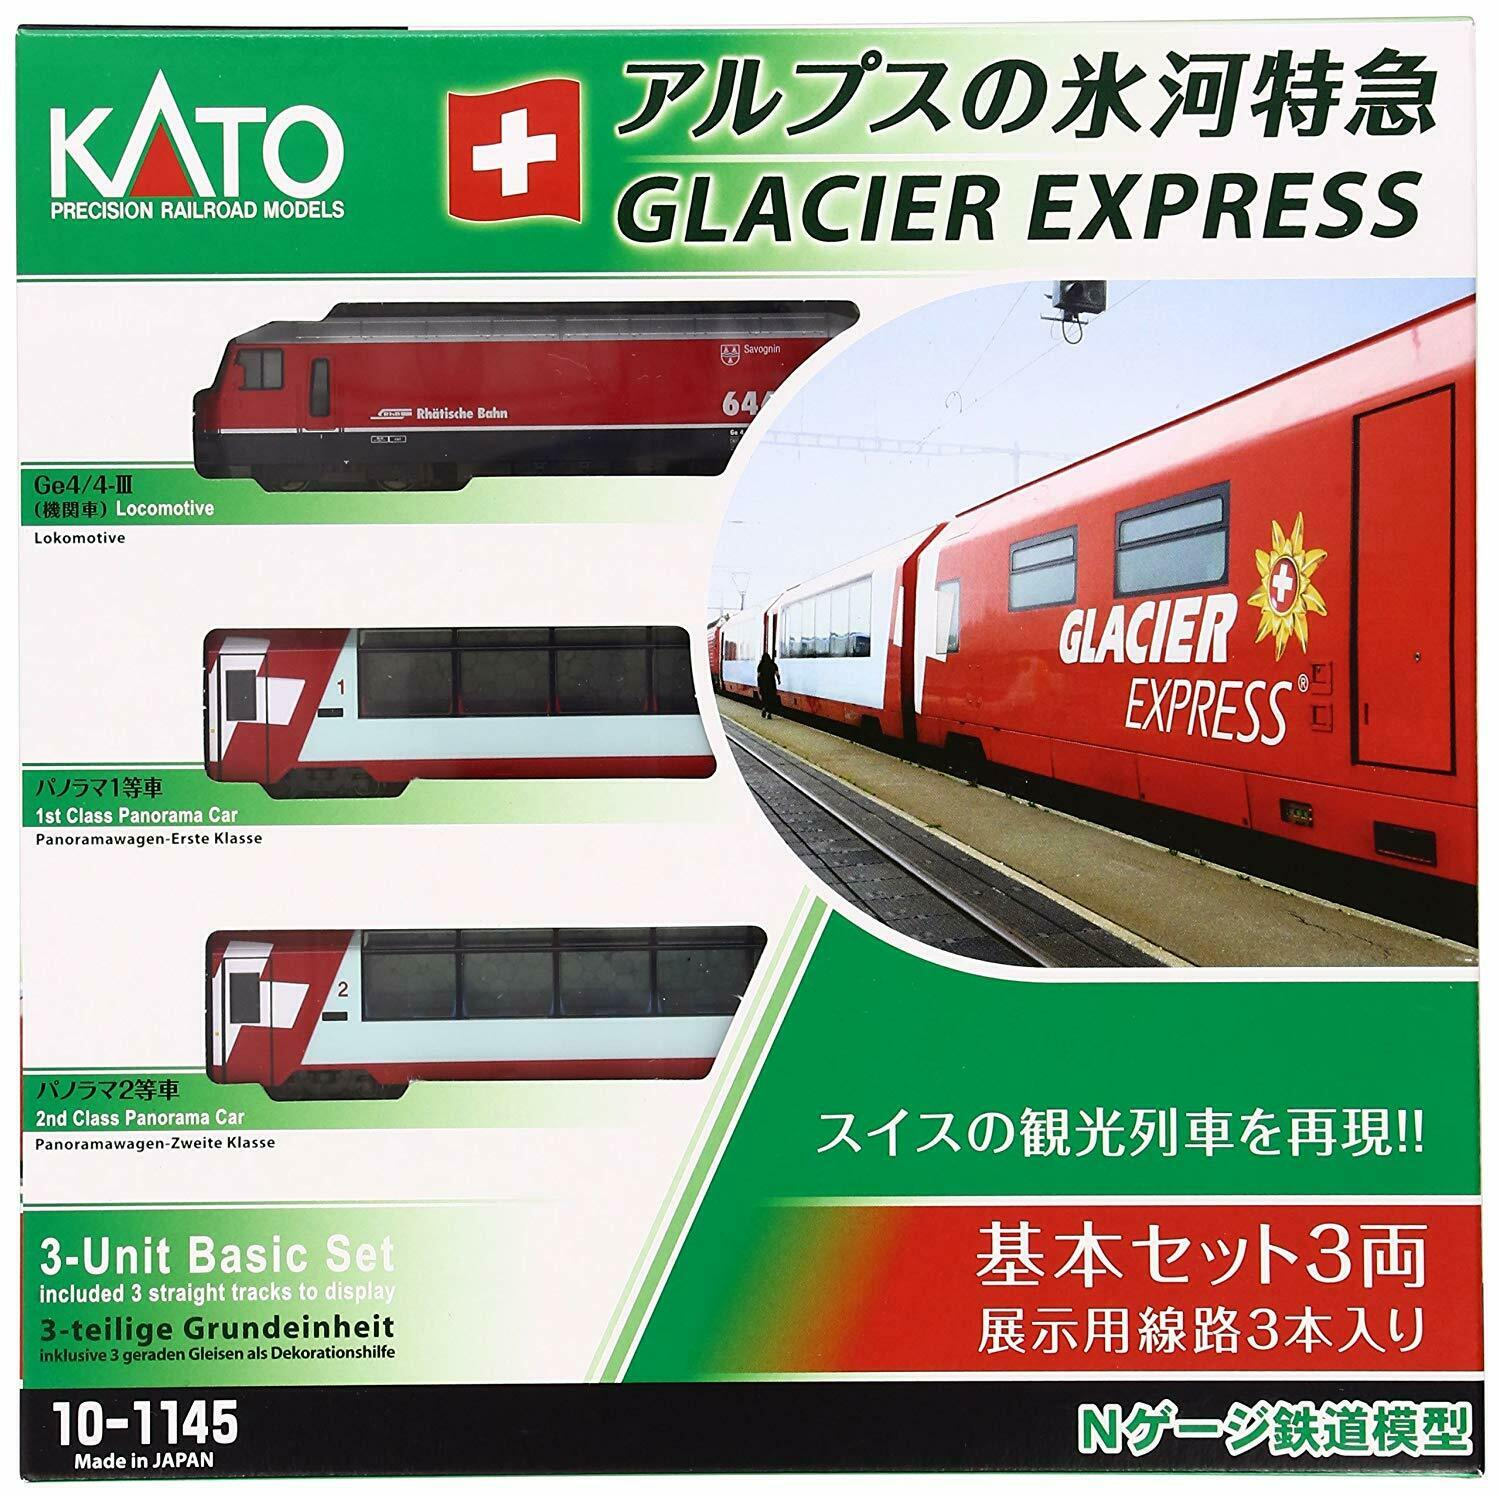 Kato Alpine Glacier Express 3 Bil Basic Set Poweröd N gauge 10 -1145